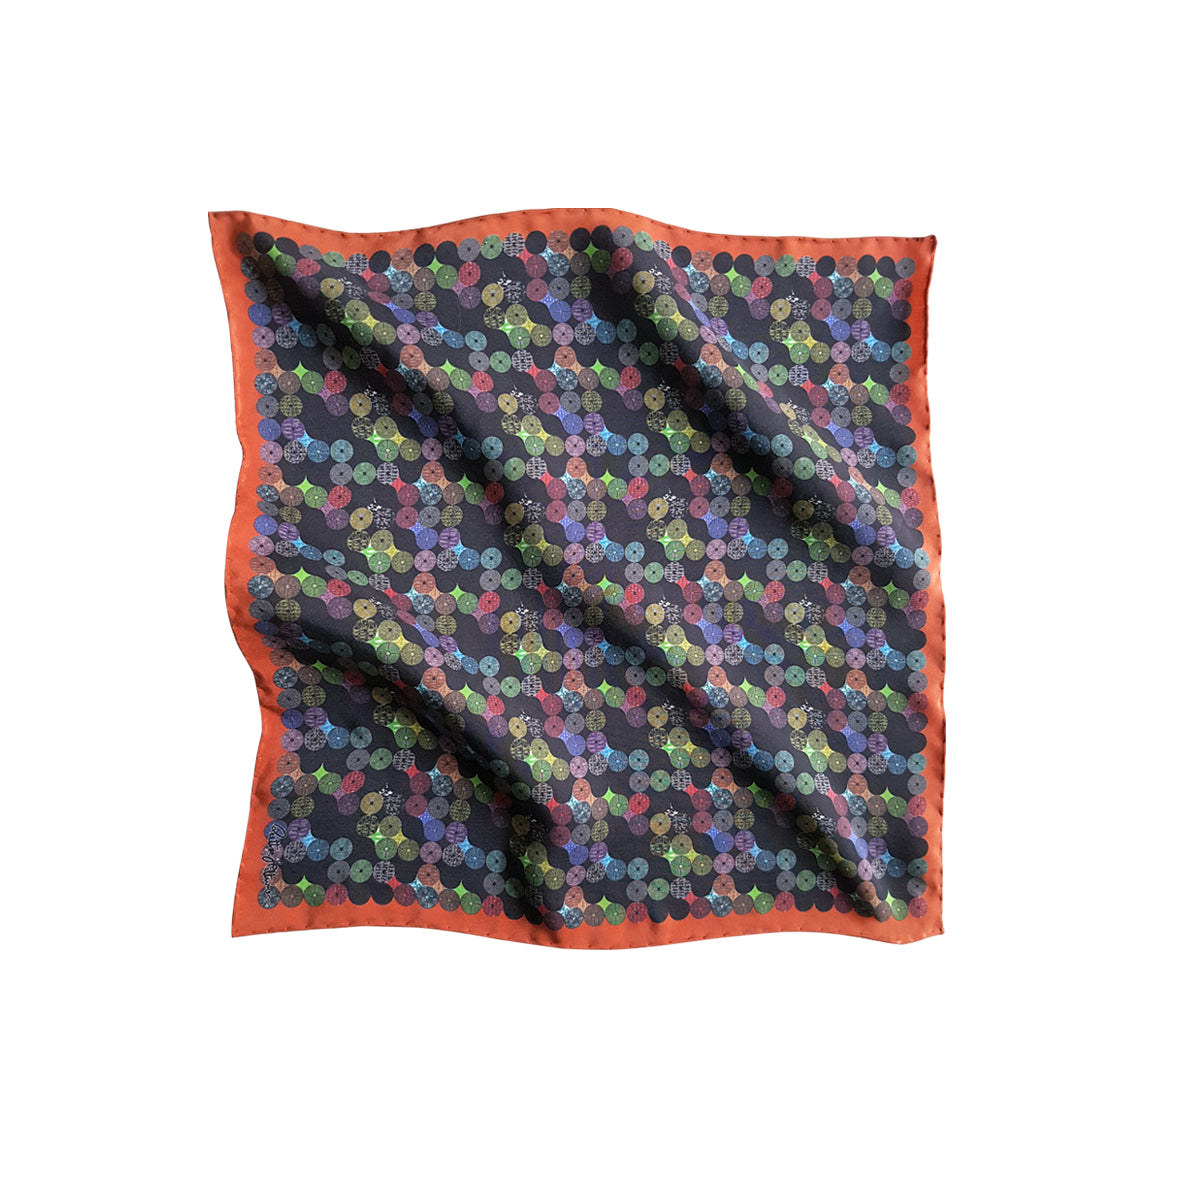 Labyrinth (orange border) - Pocket Square